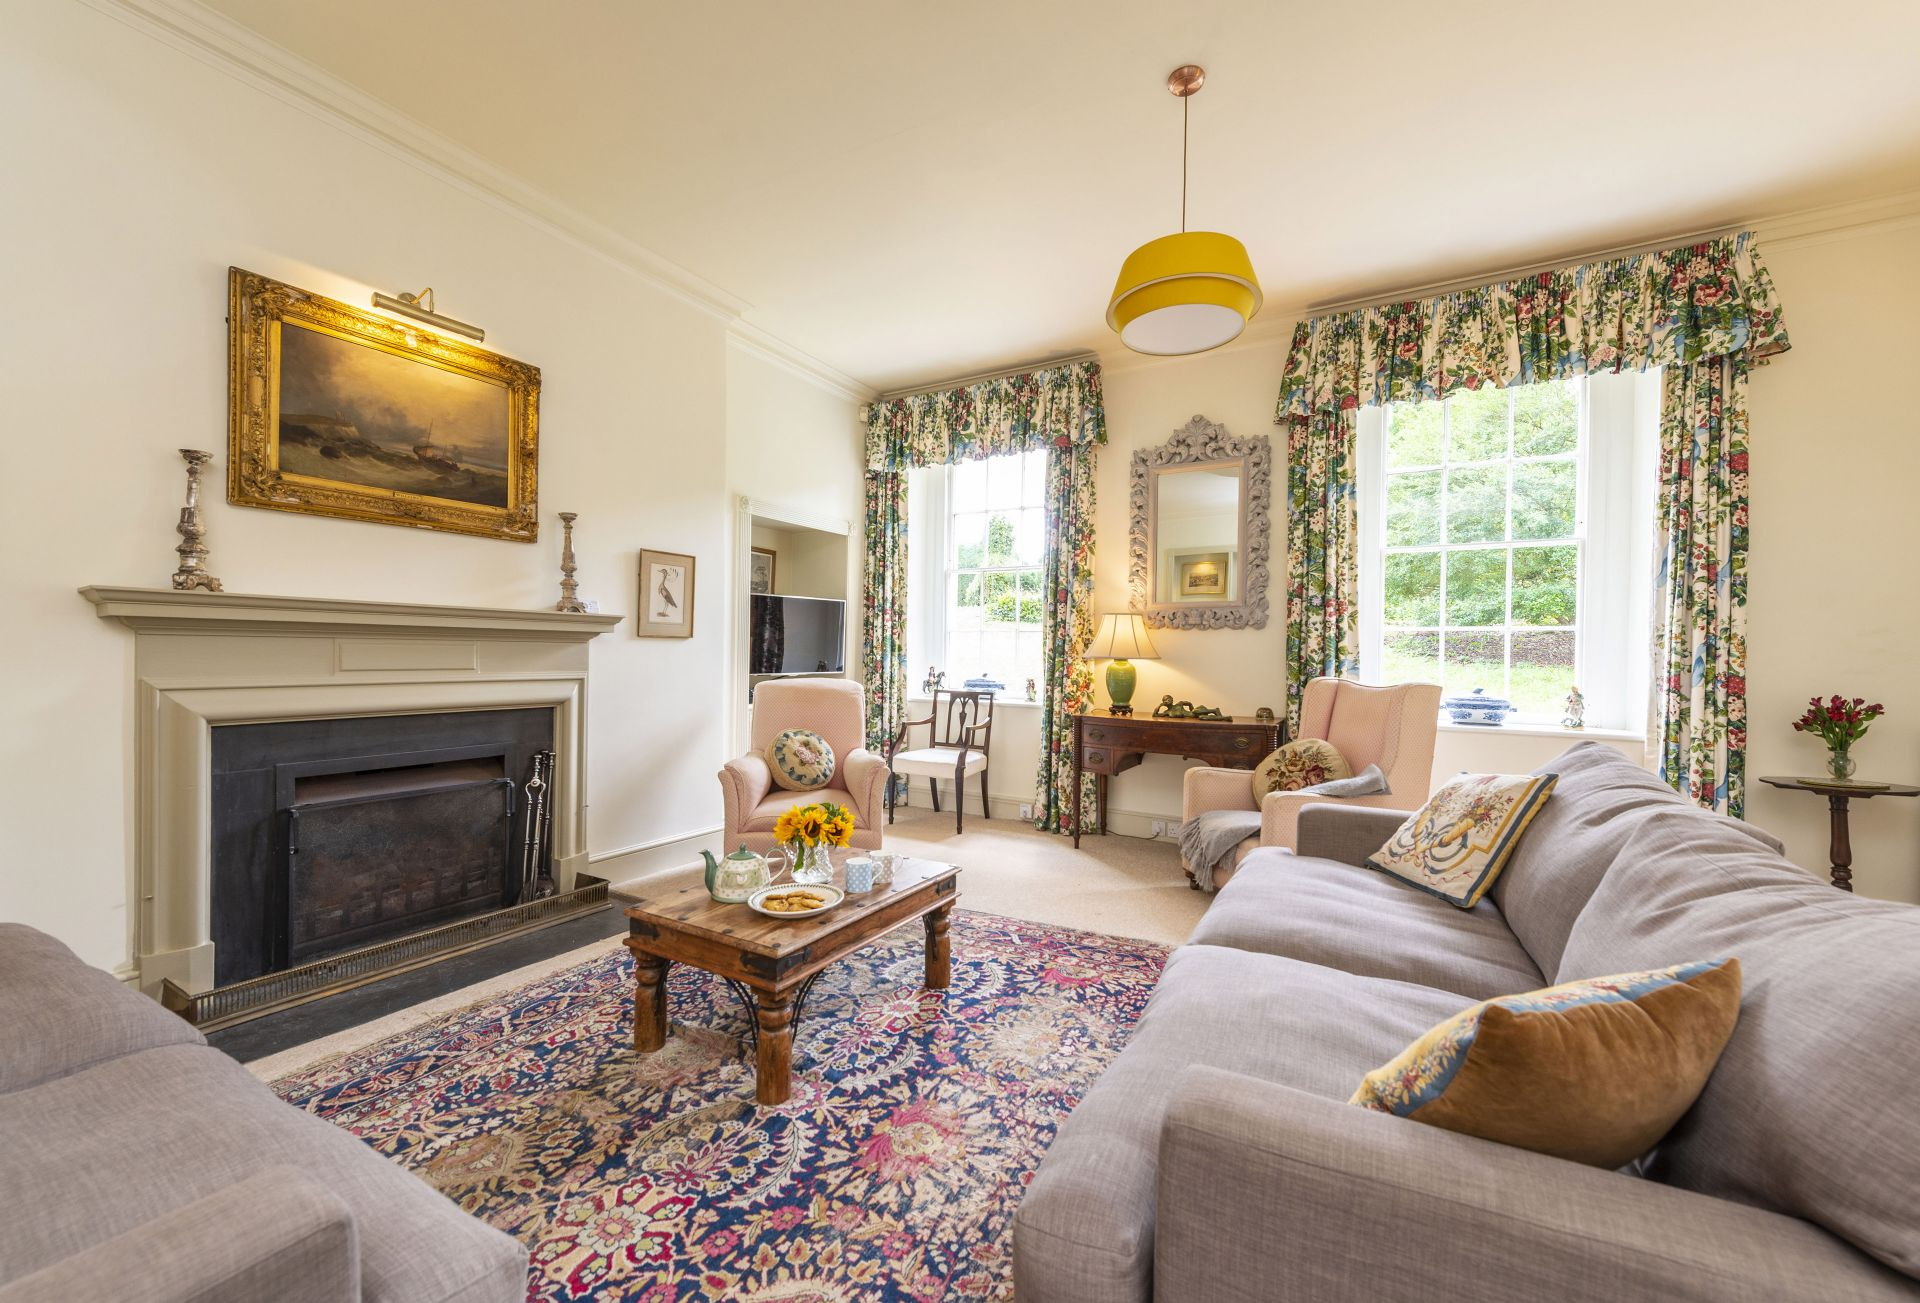 The Garden House is located in Dorchester and surrounding villages